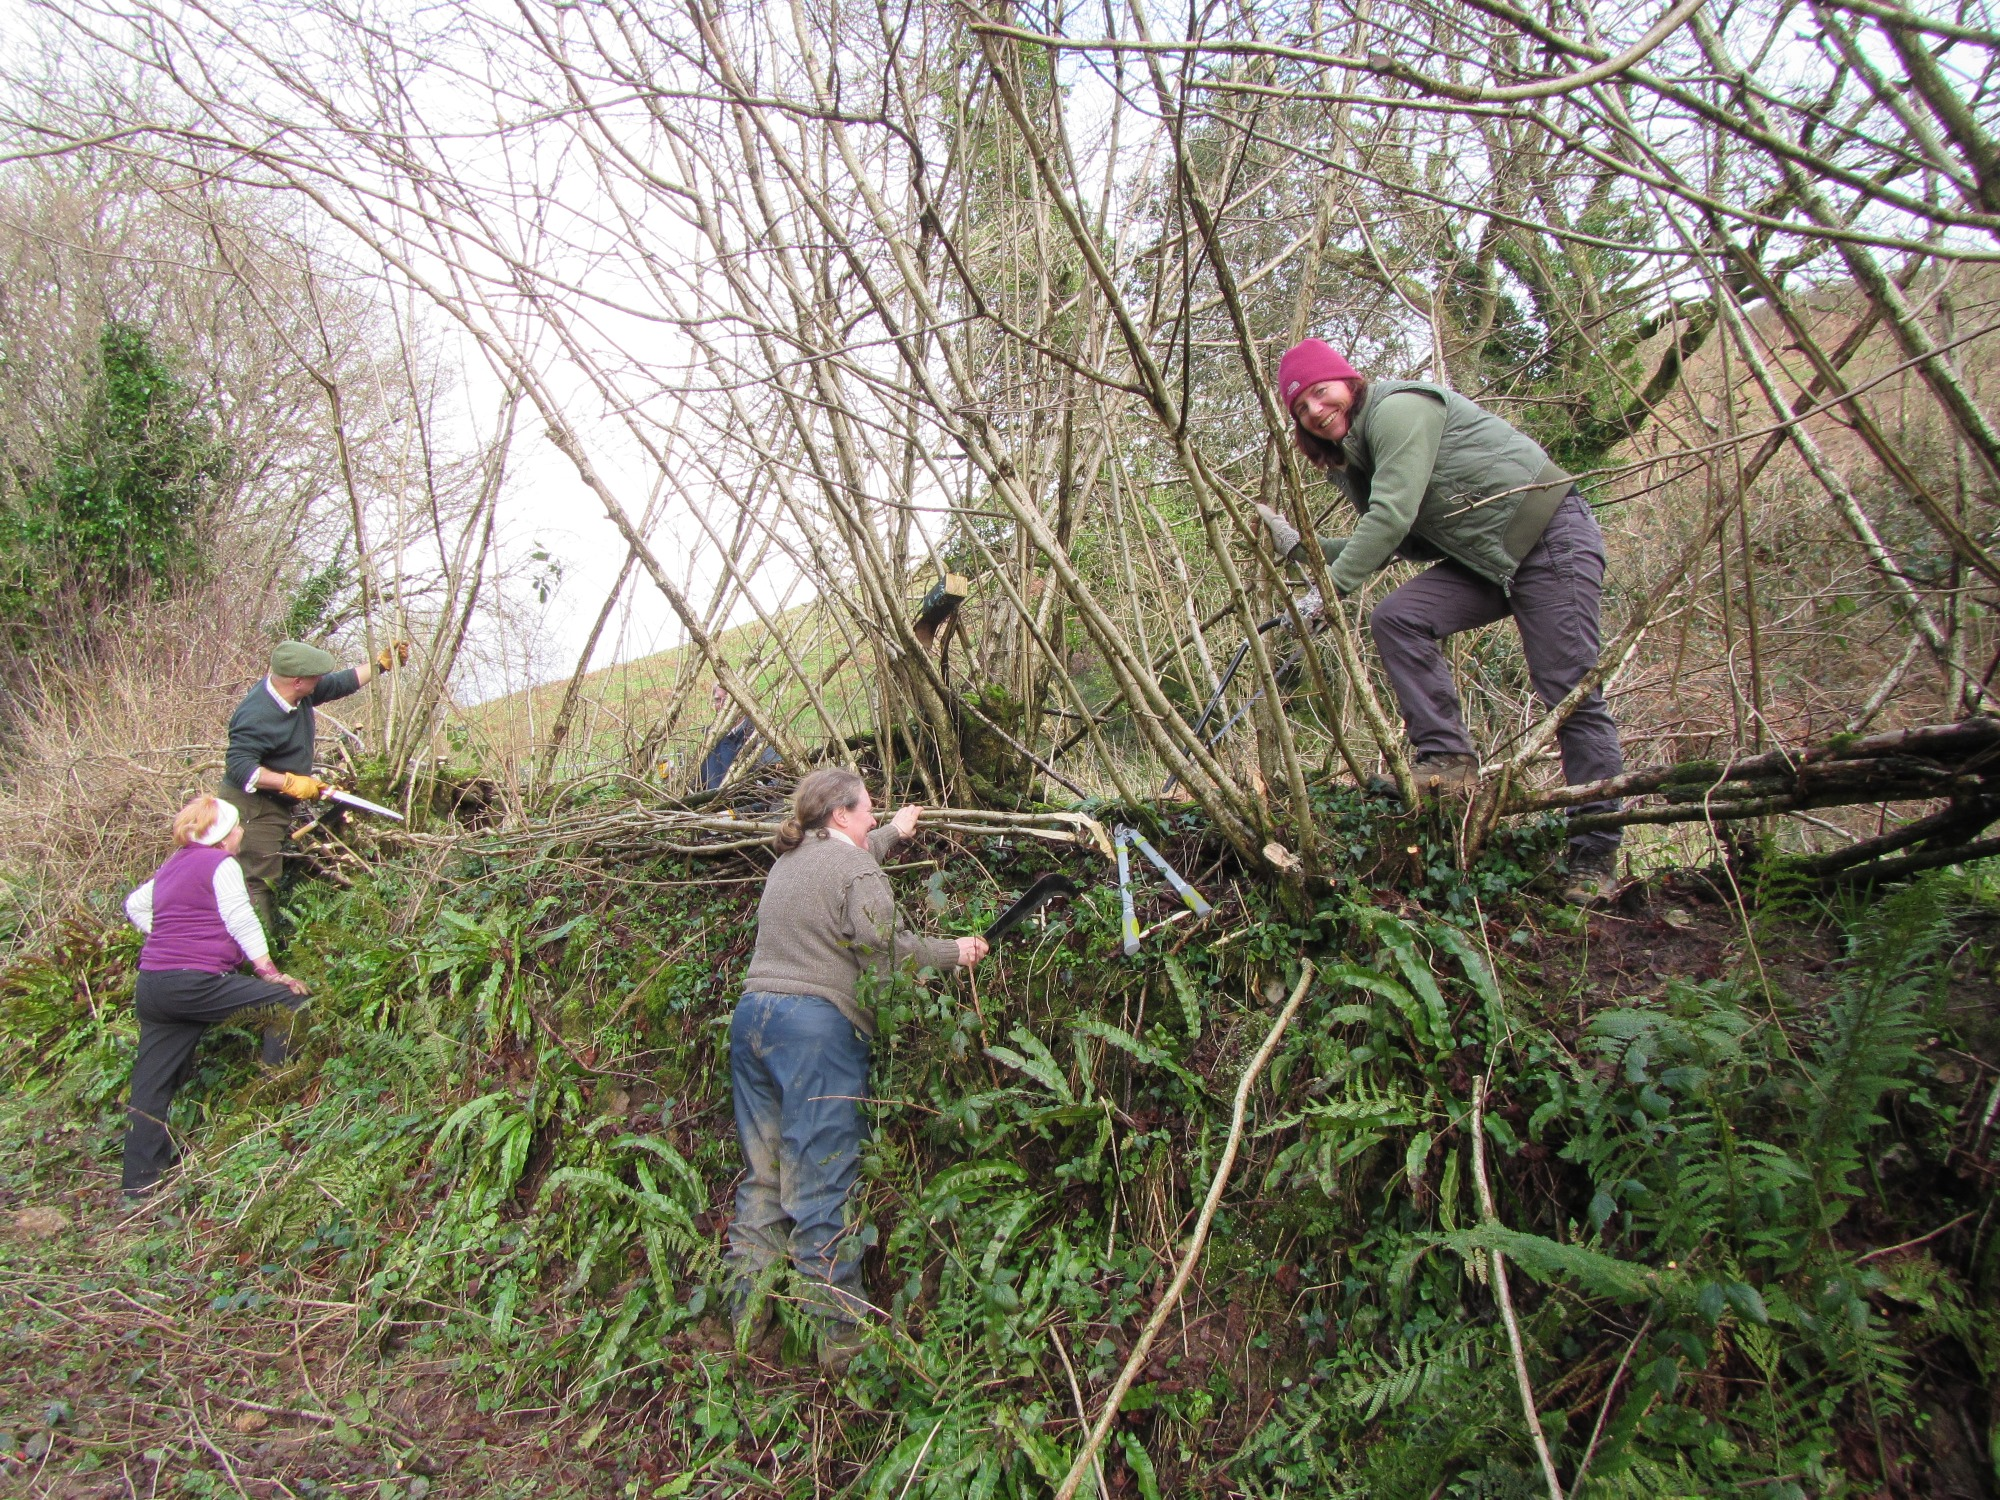 Laying a hedge in East Devon. Your donation will help us plant entirely new hedges